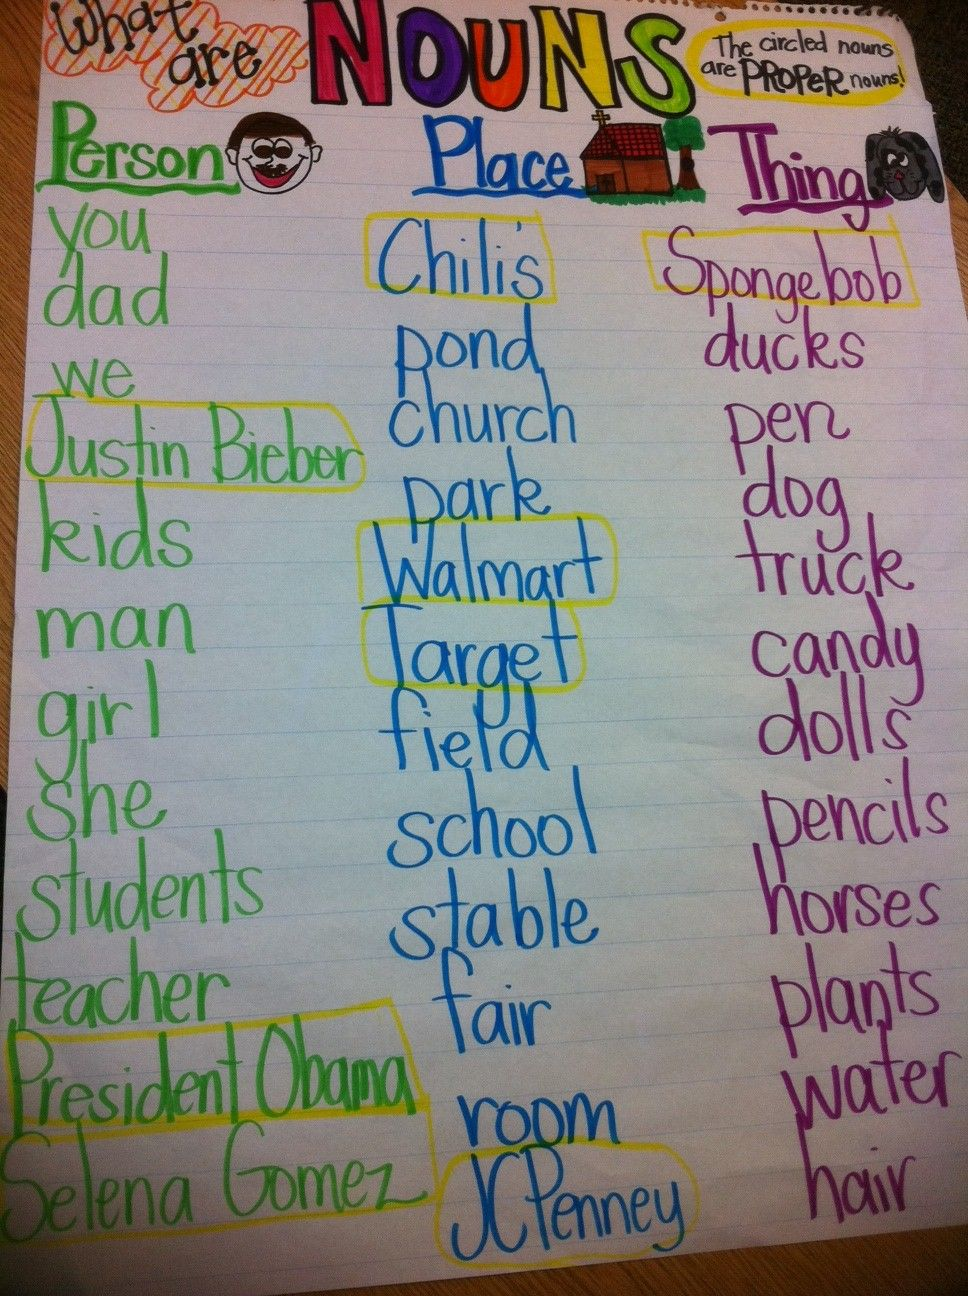 List of Nouns...student generated | Classroom stuff | Pinterest ...